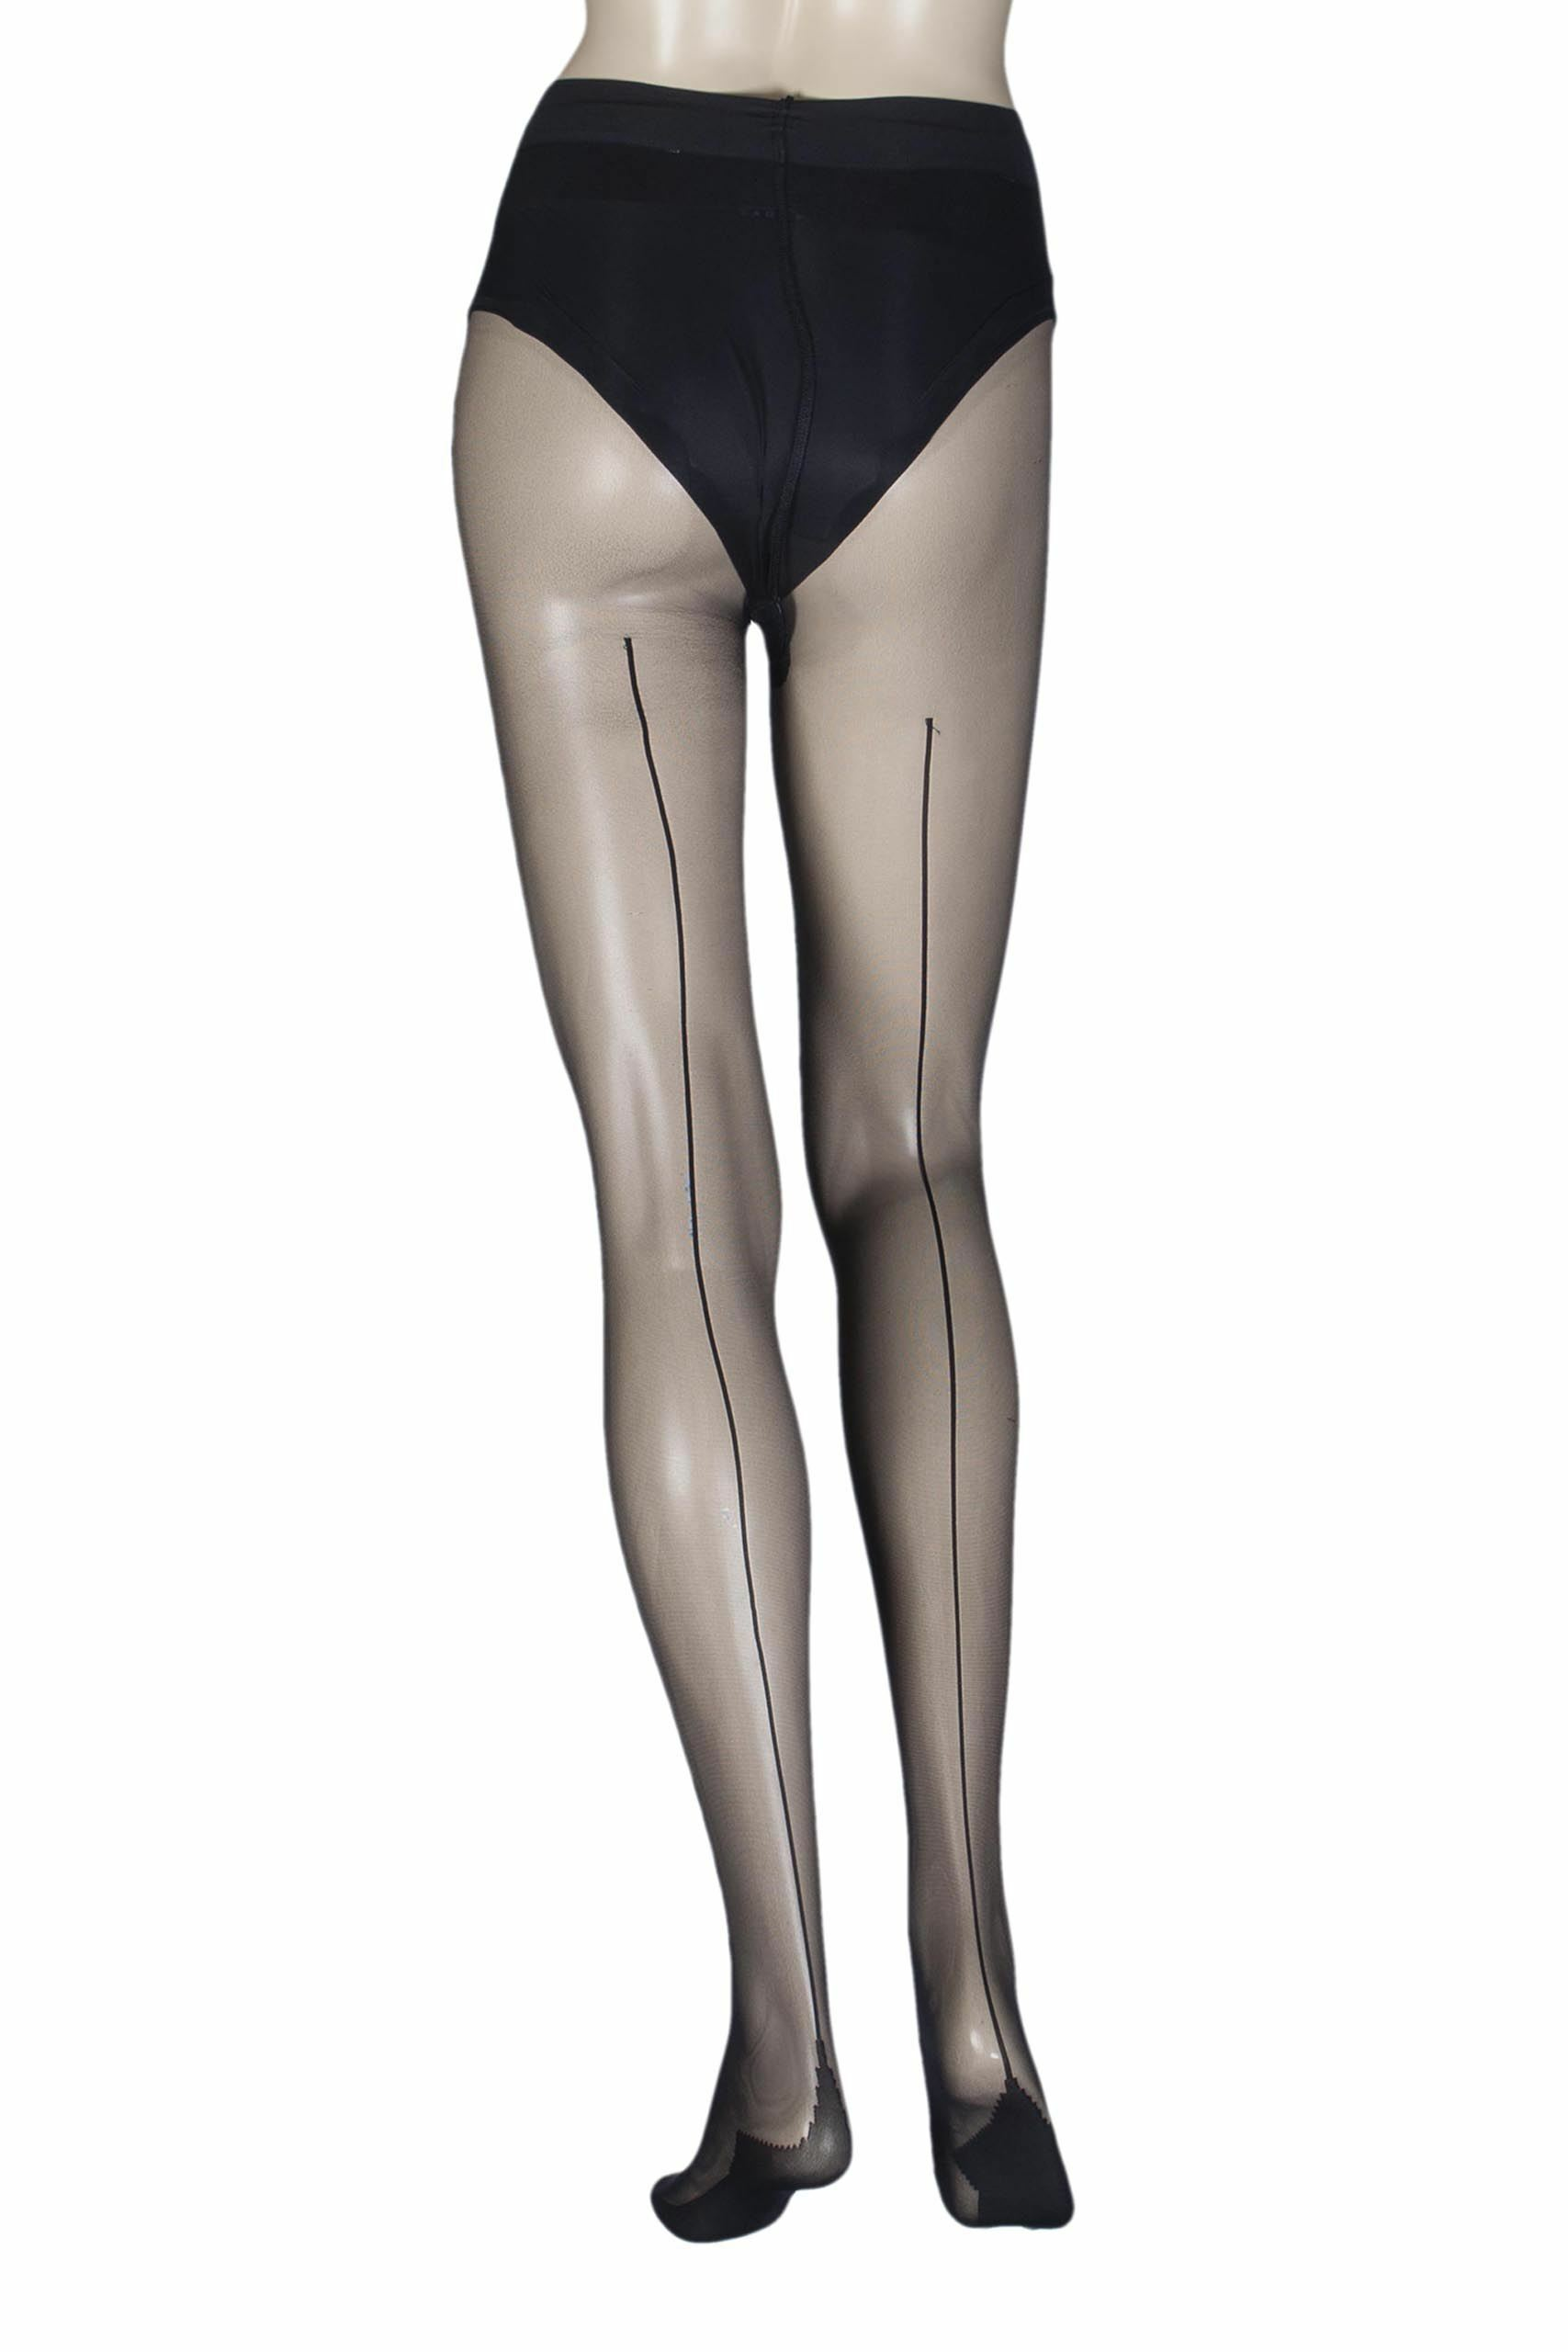 Image of 1 Pair Black Ultimate Sexy Sheer Back Seam Tights Ladies Small - Calvin Klein